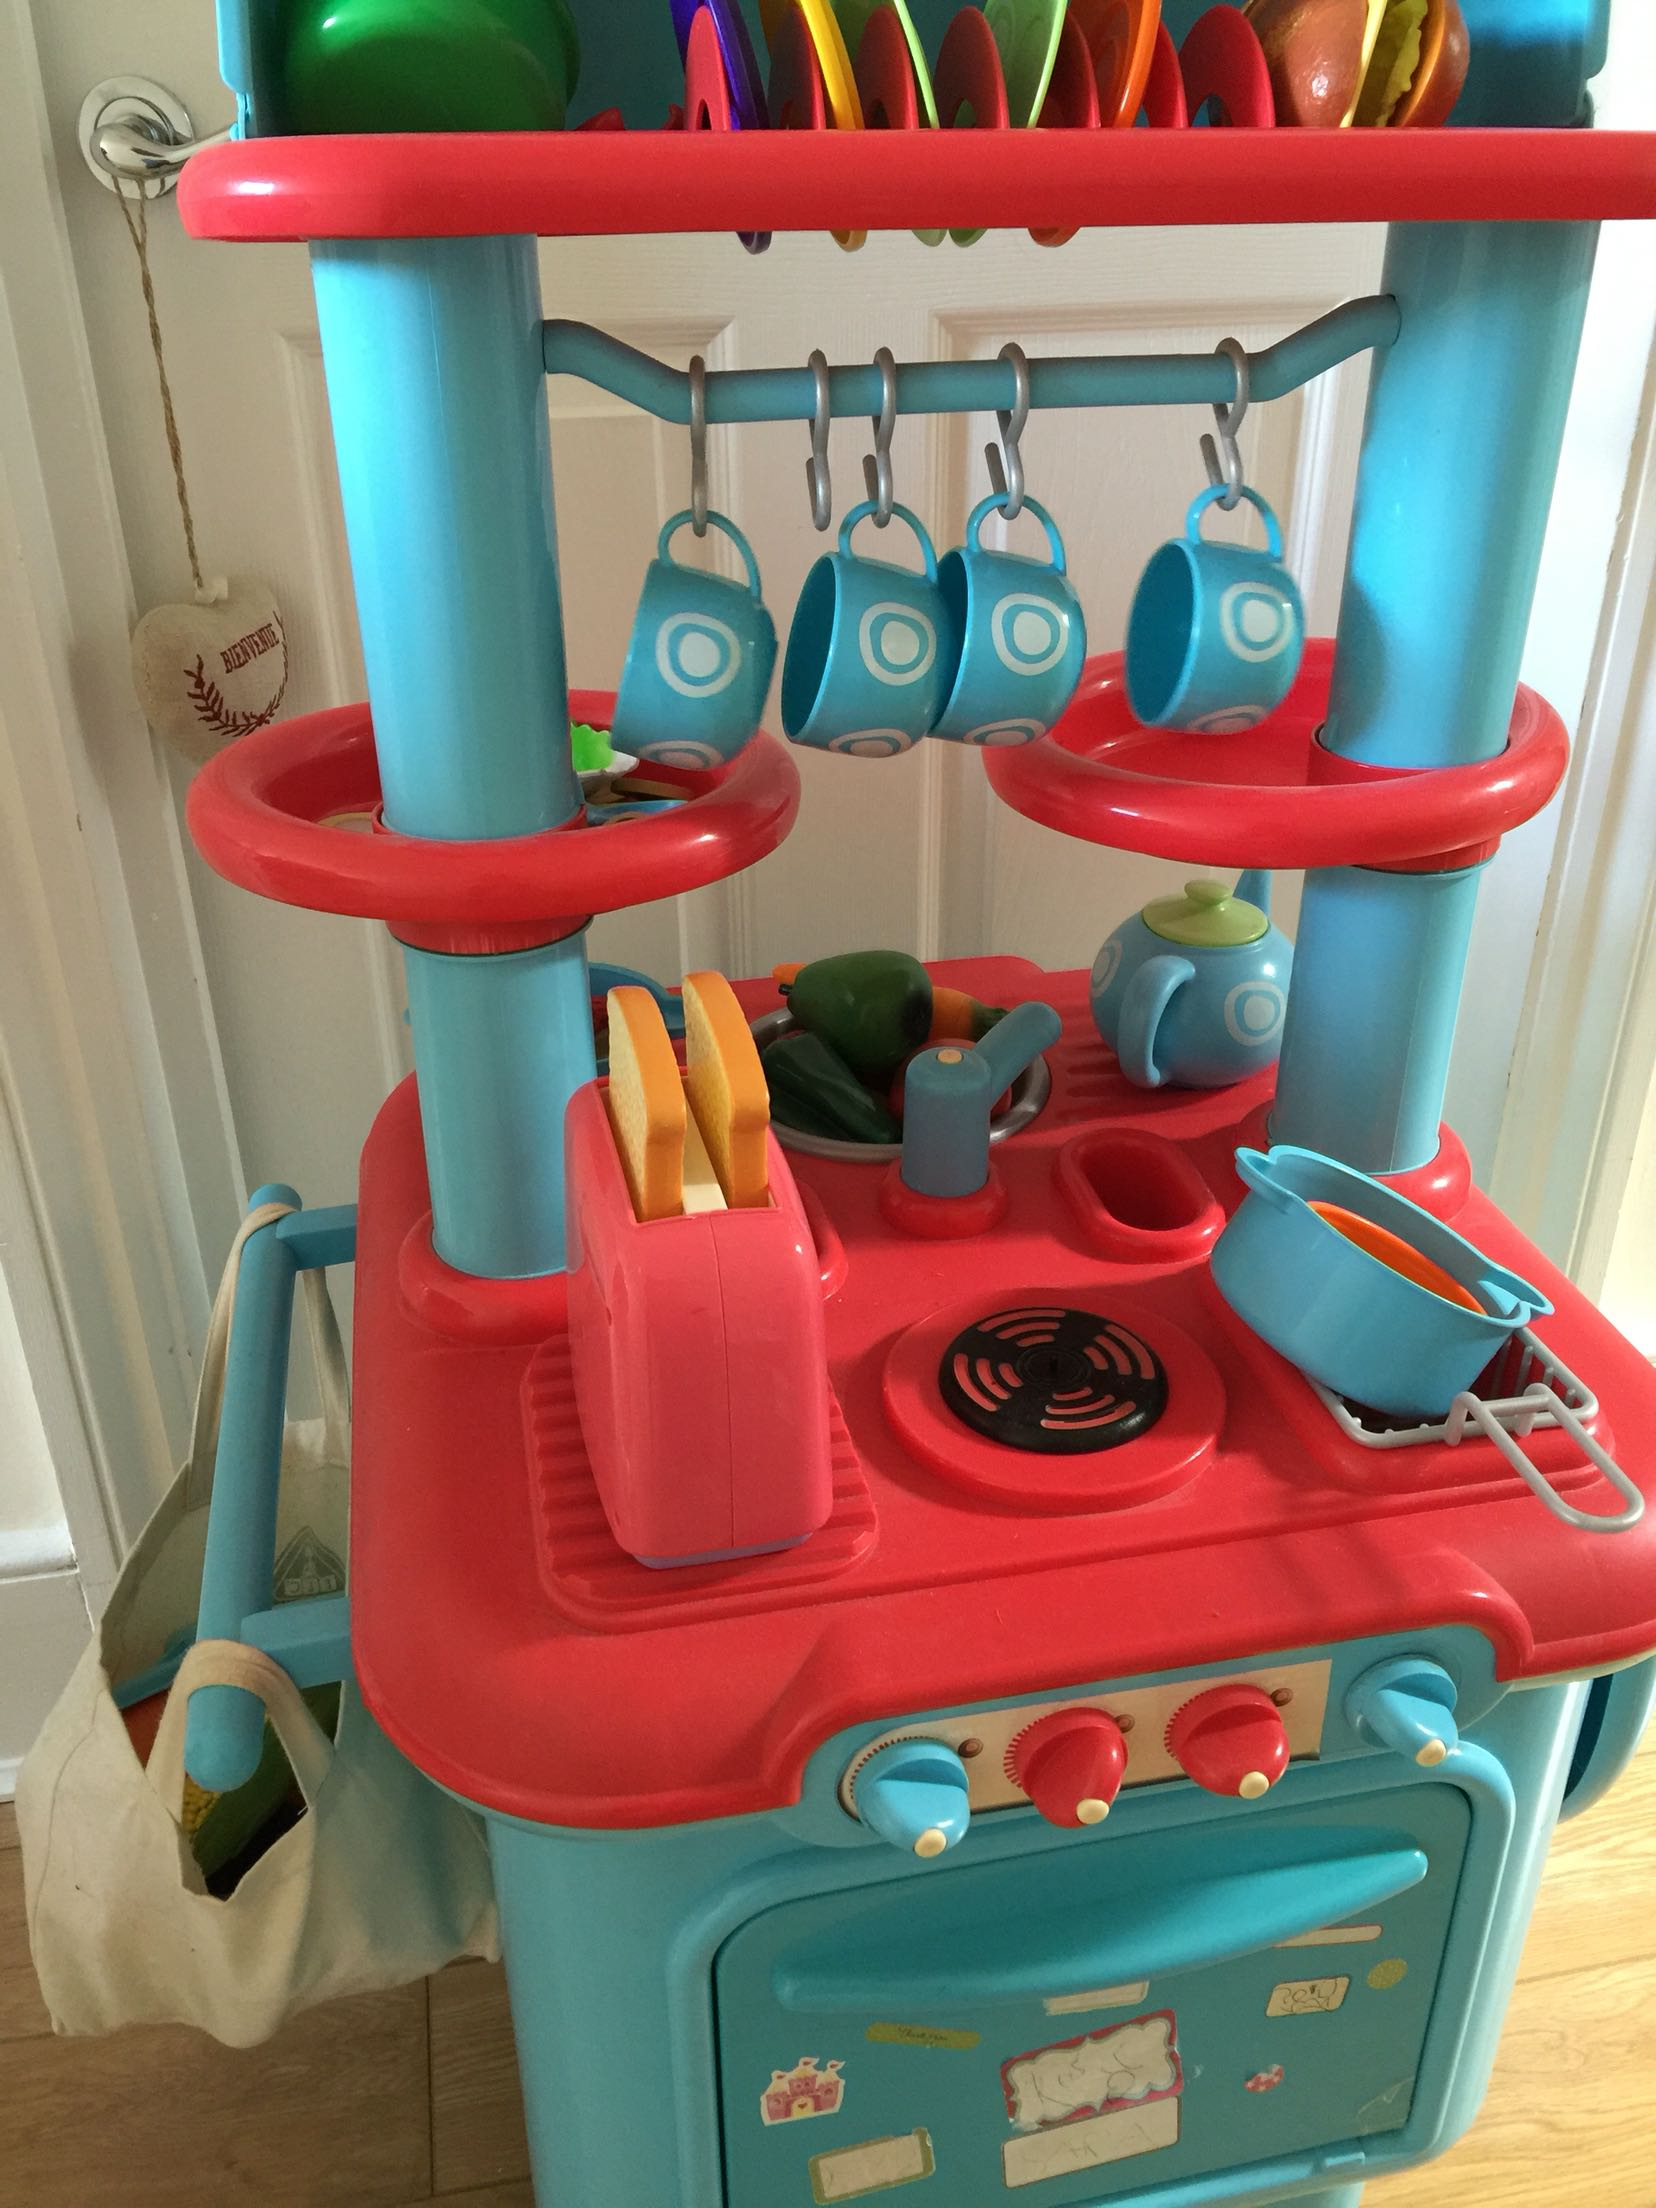 Kitchen play set toy for sale in uk view 83 bargains for Kitchen set 008 83